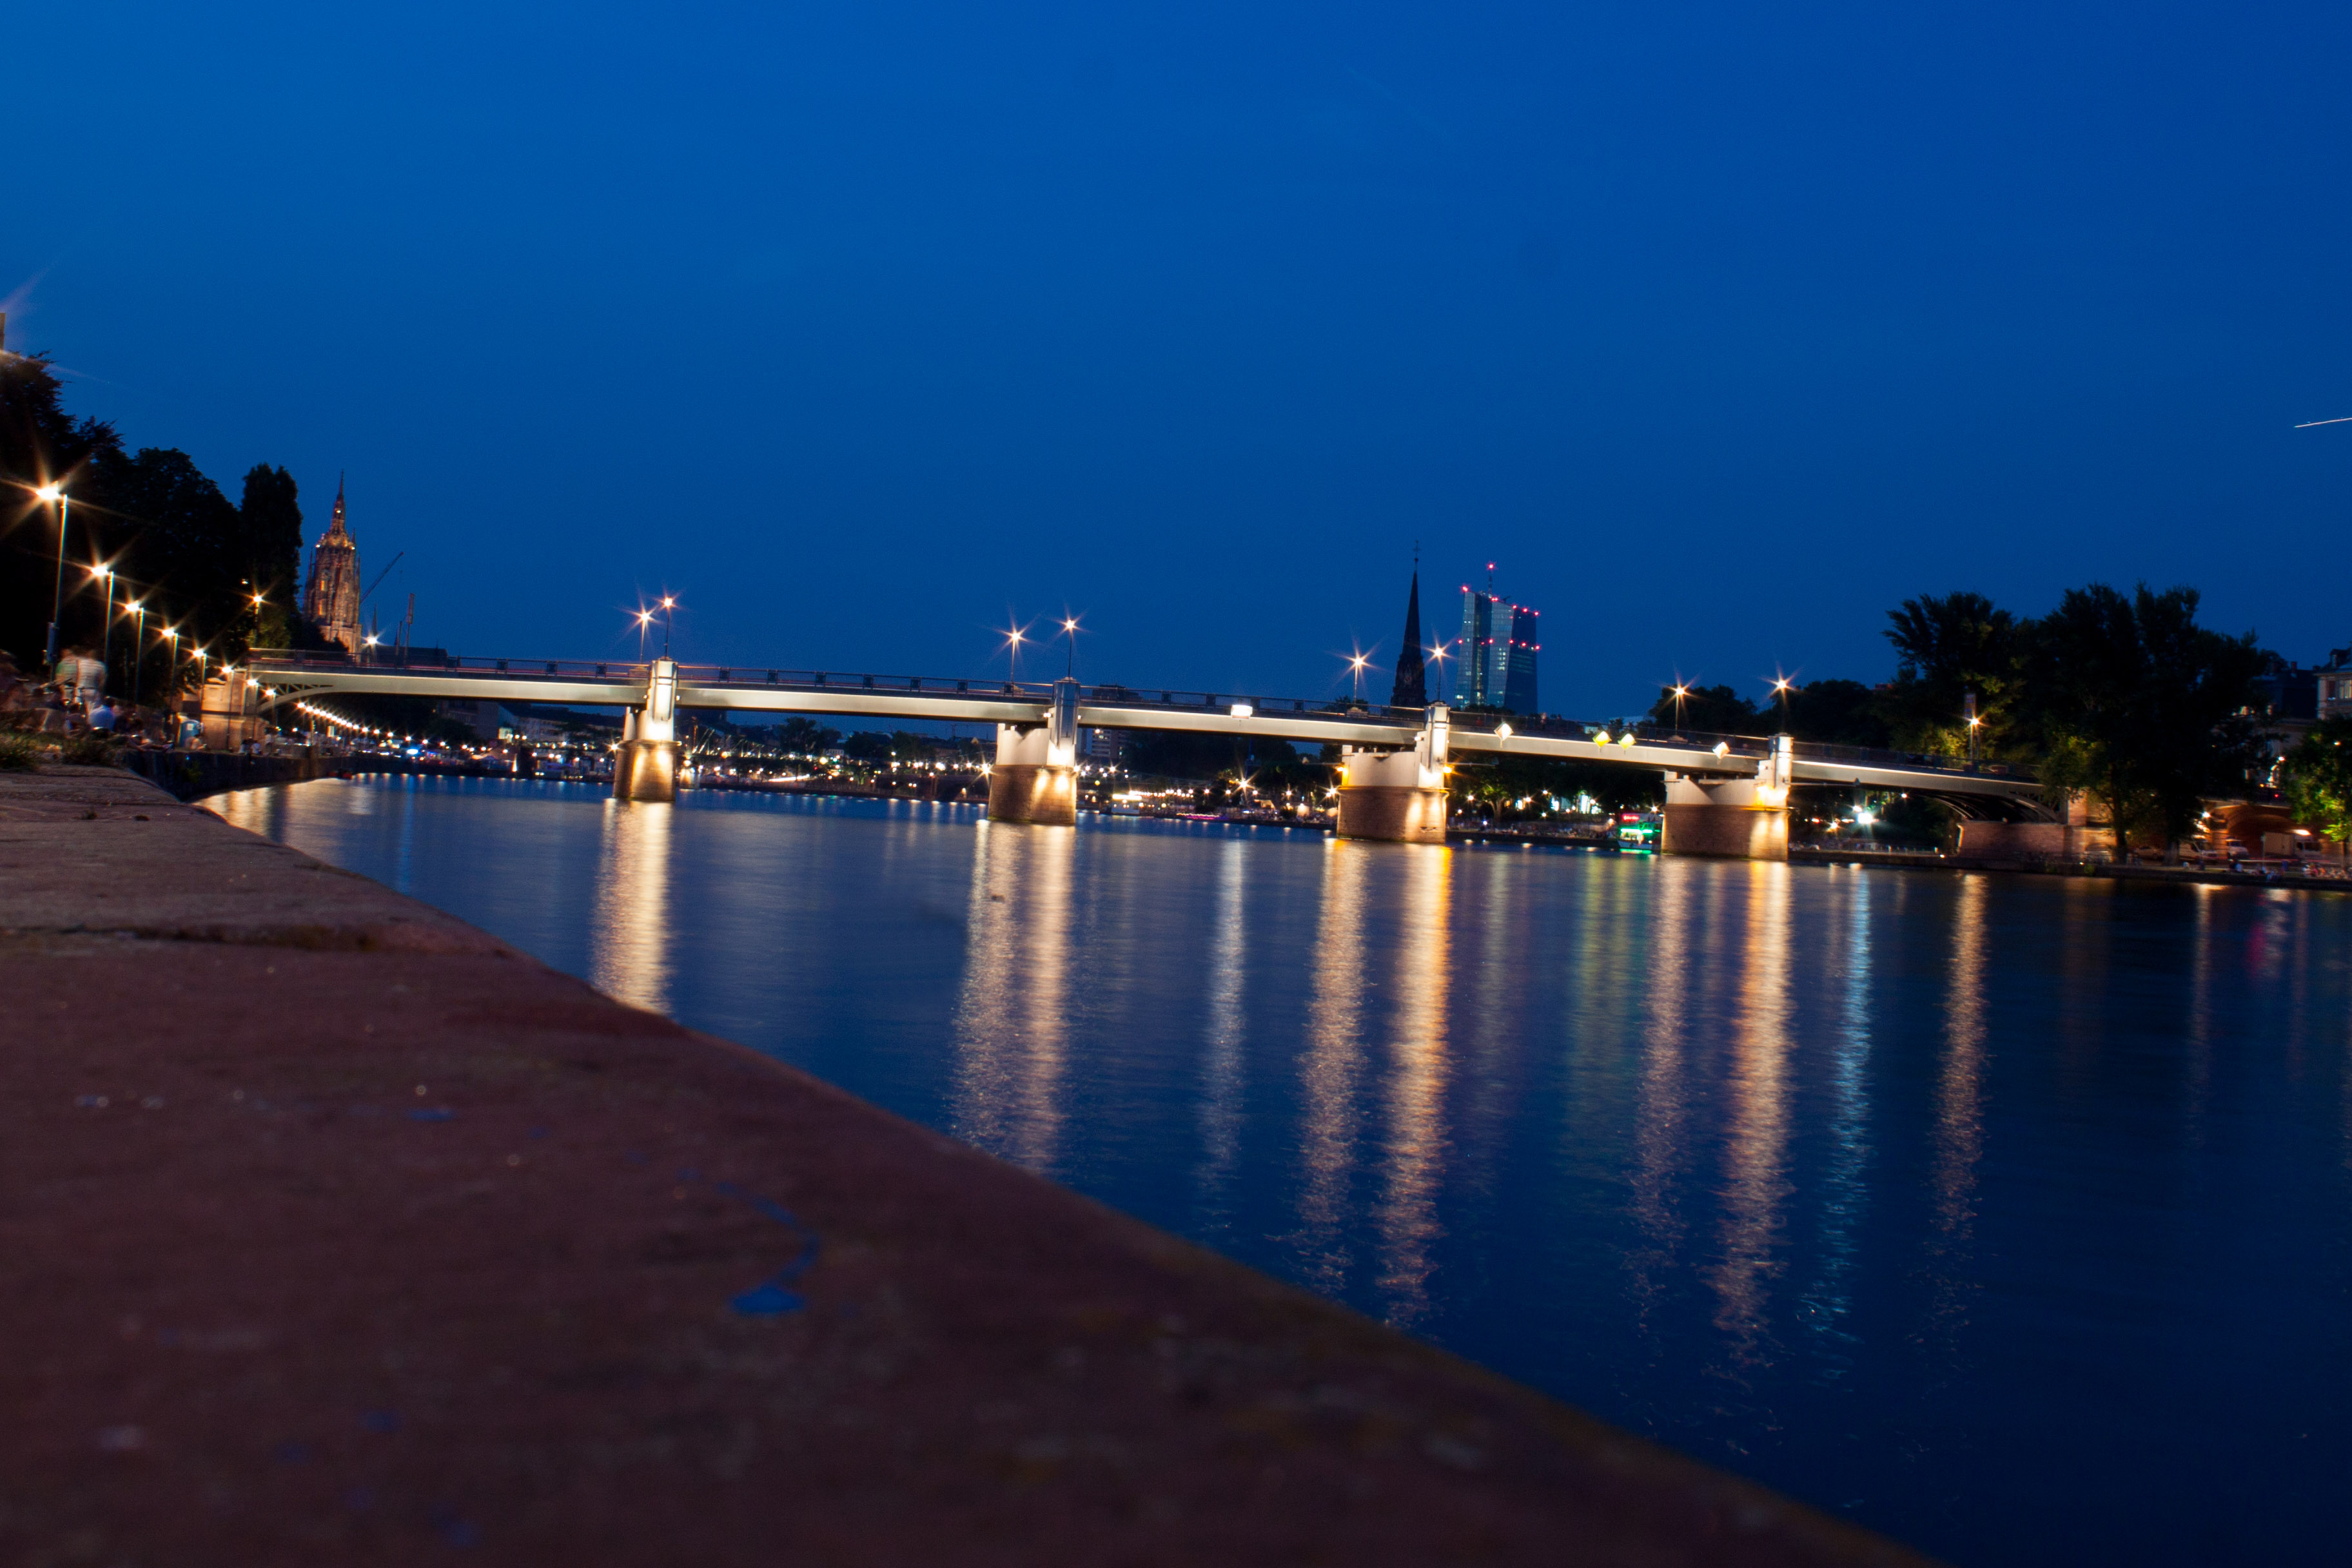 IMG_1995_c.jpg -  Main river  at  Frankfurt